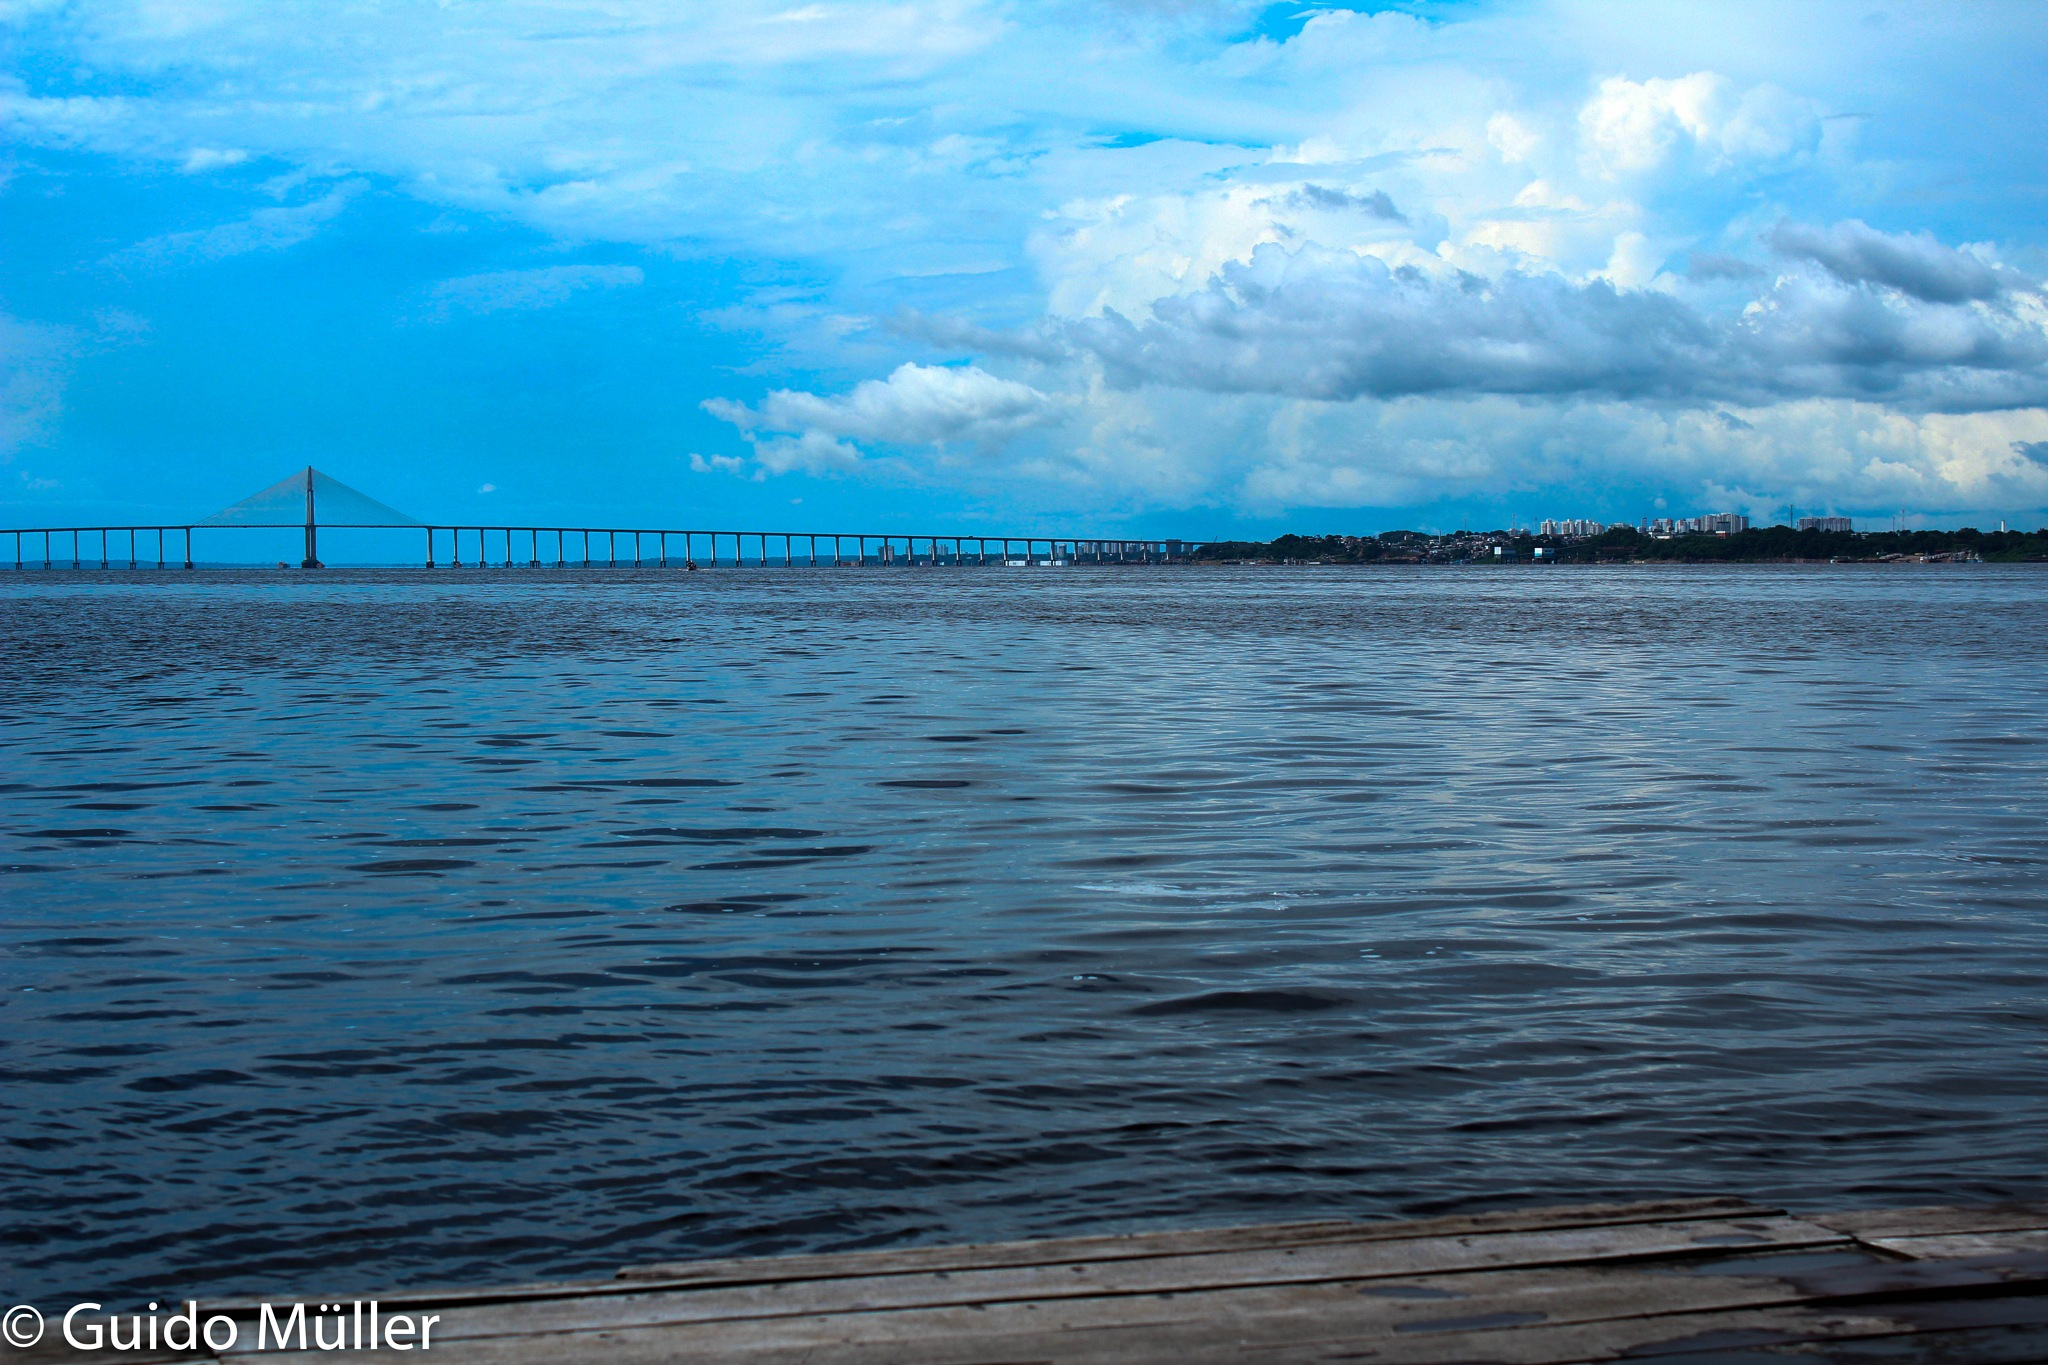 Manaus by Guido Muller